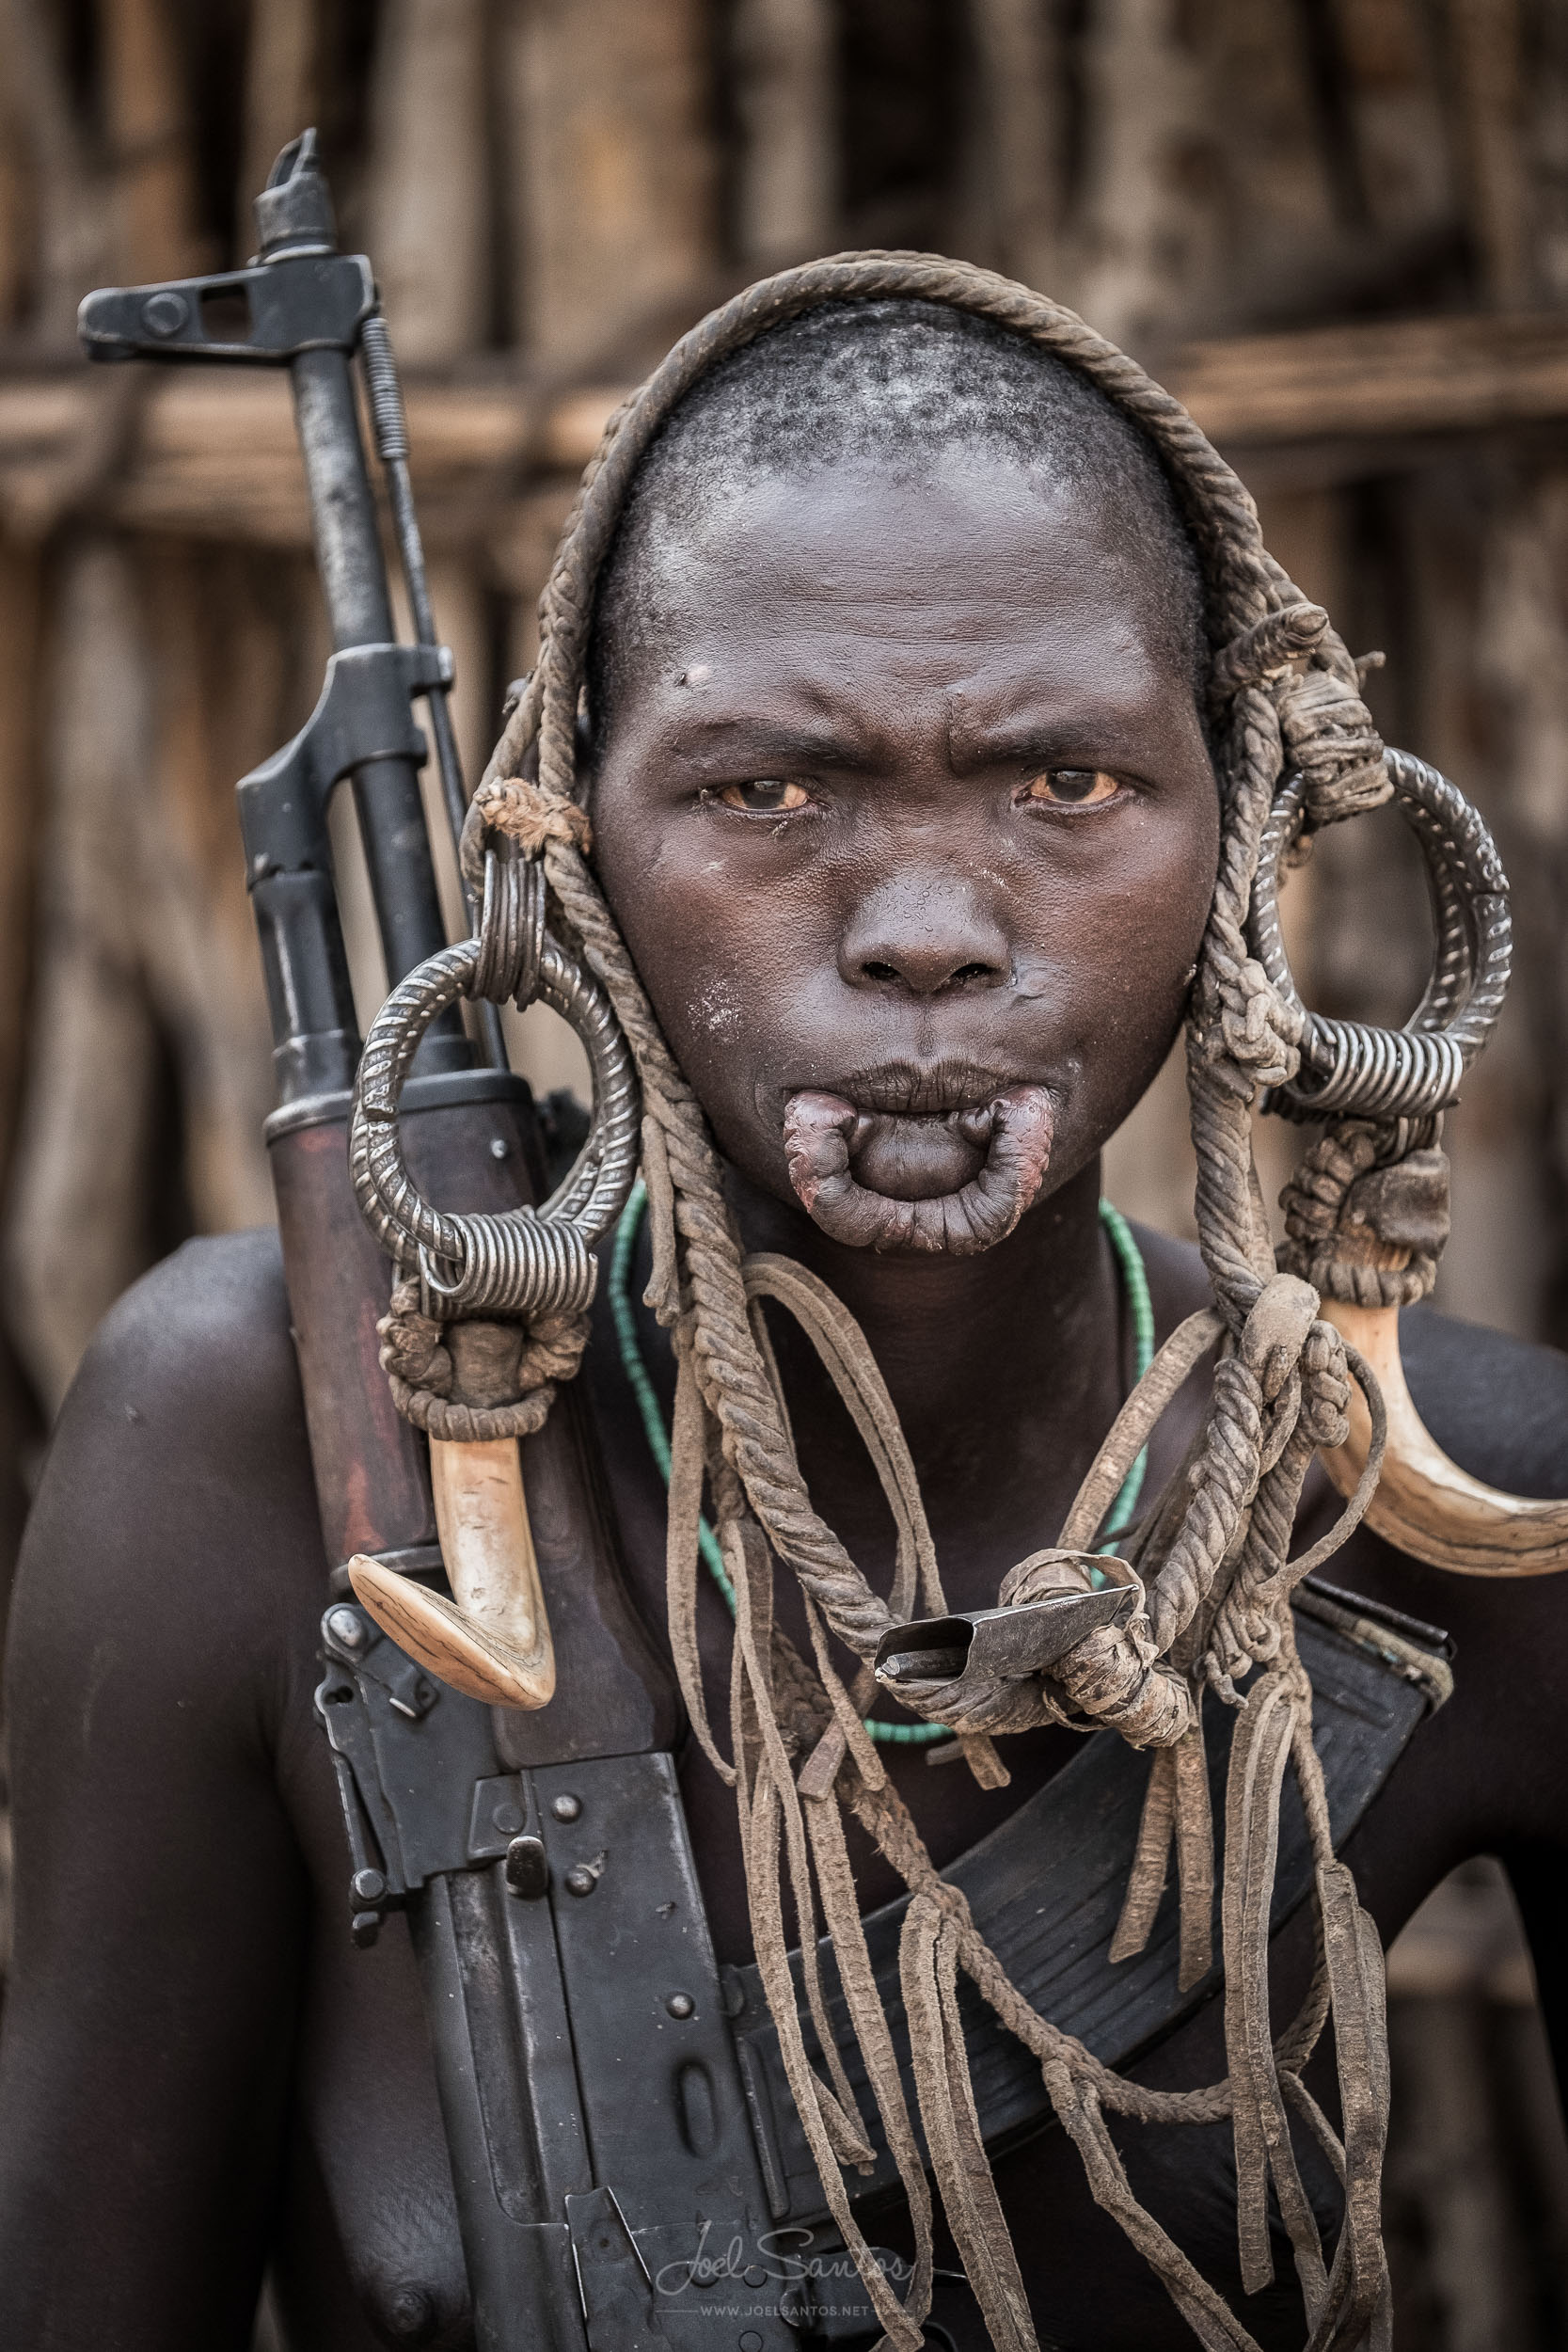 Mursi Tribe woman holding an assault rifle, Omo Valley, Ethiopi